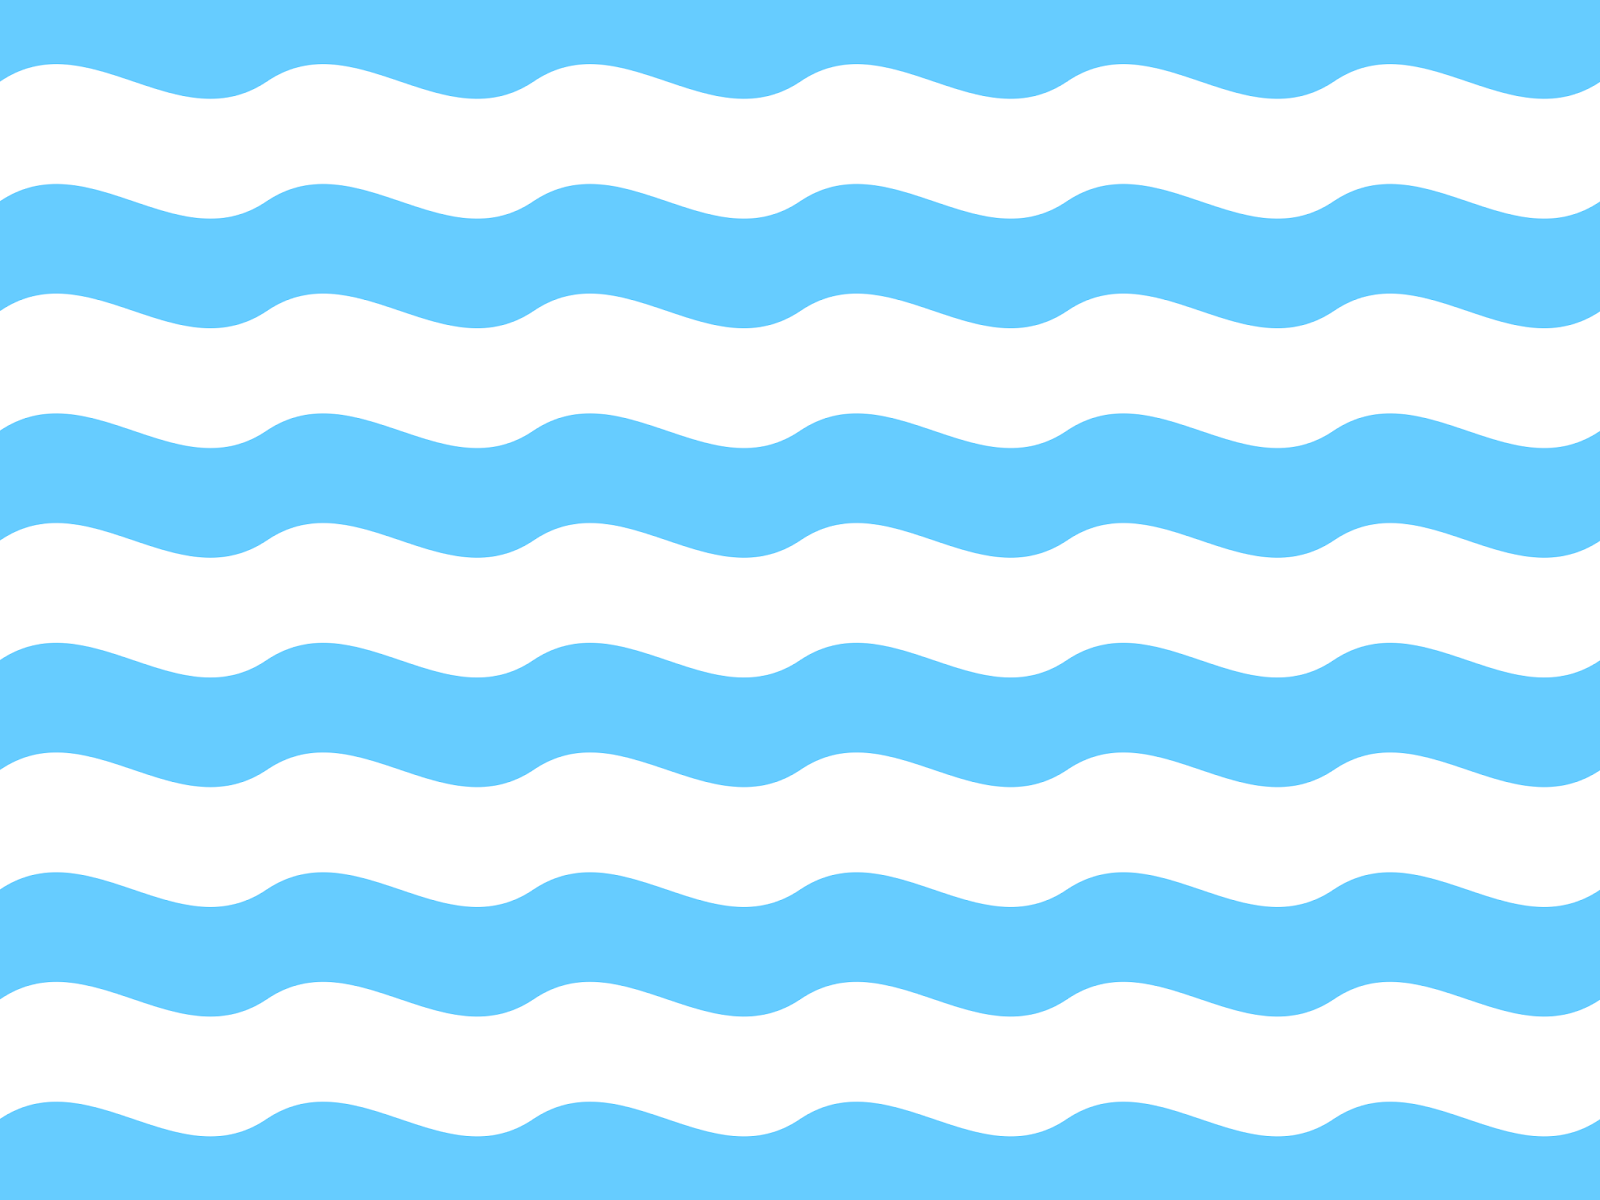 Free Waves Cliparts, Download Free Clip Art, Free Clip Art.